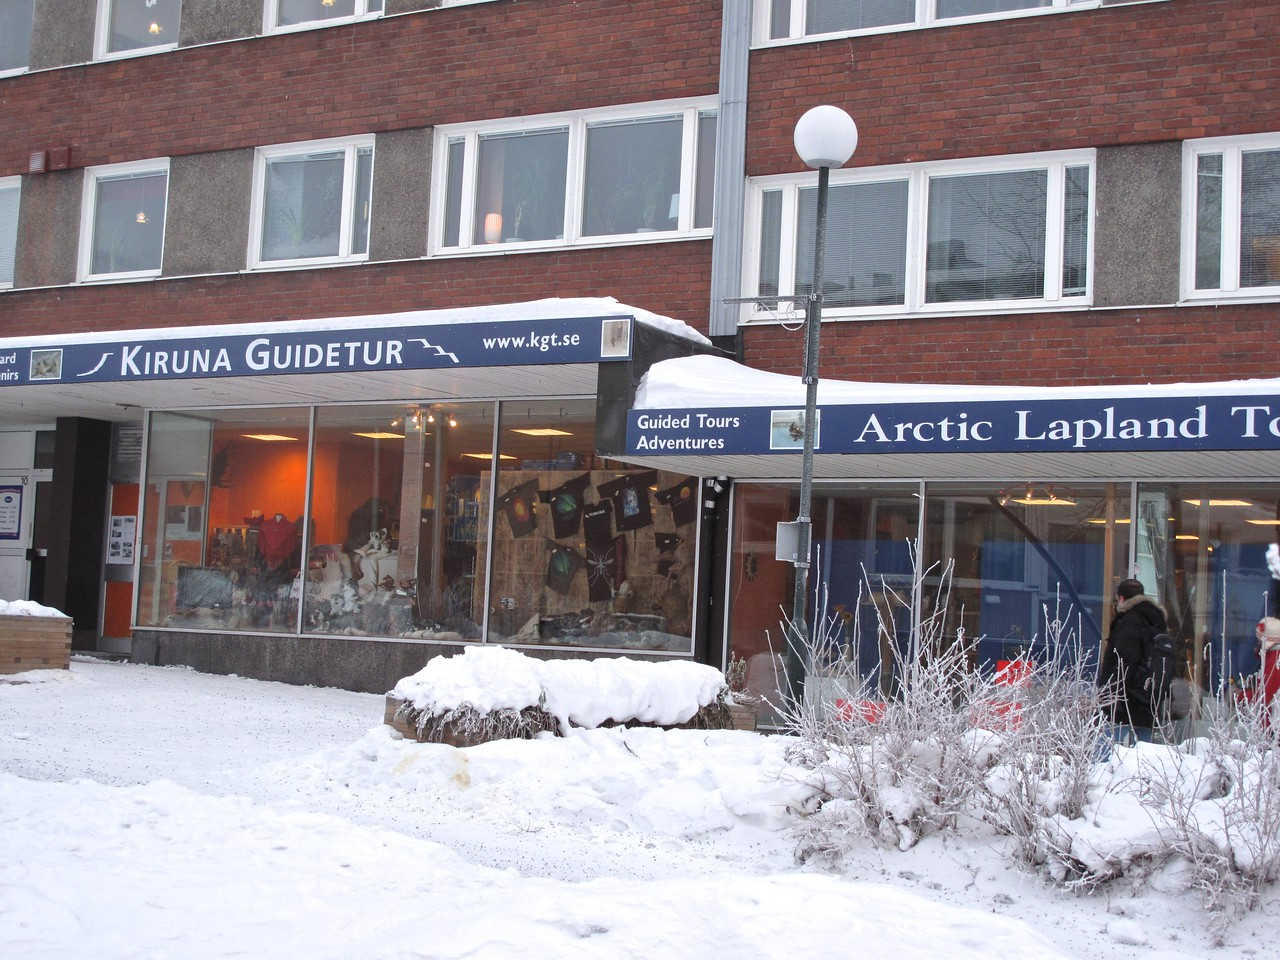 In the center of town is the orrice and shop of Kiruna Guidetours.  We used them to schedule our accomodations and activities while in Kiruna.  They did a great job.